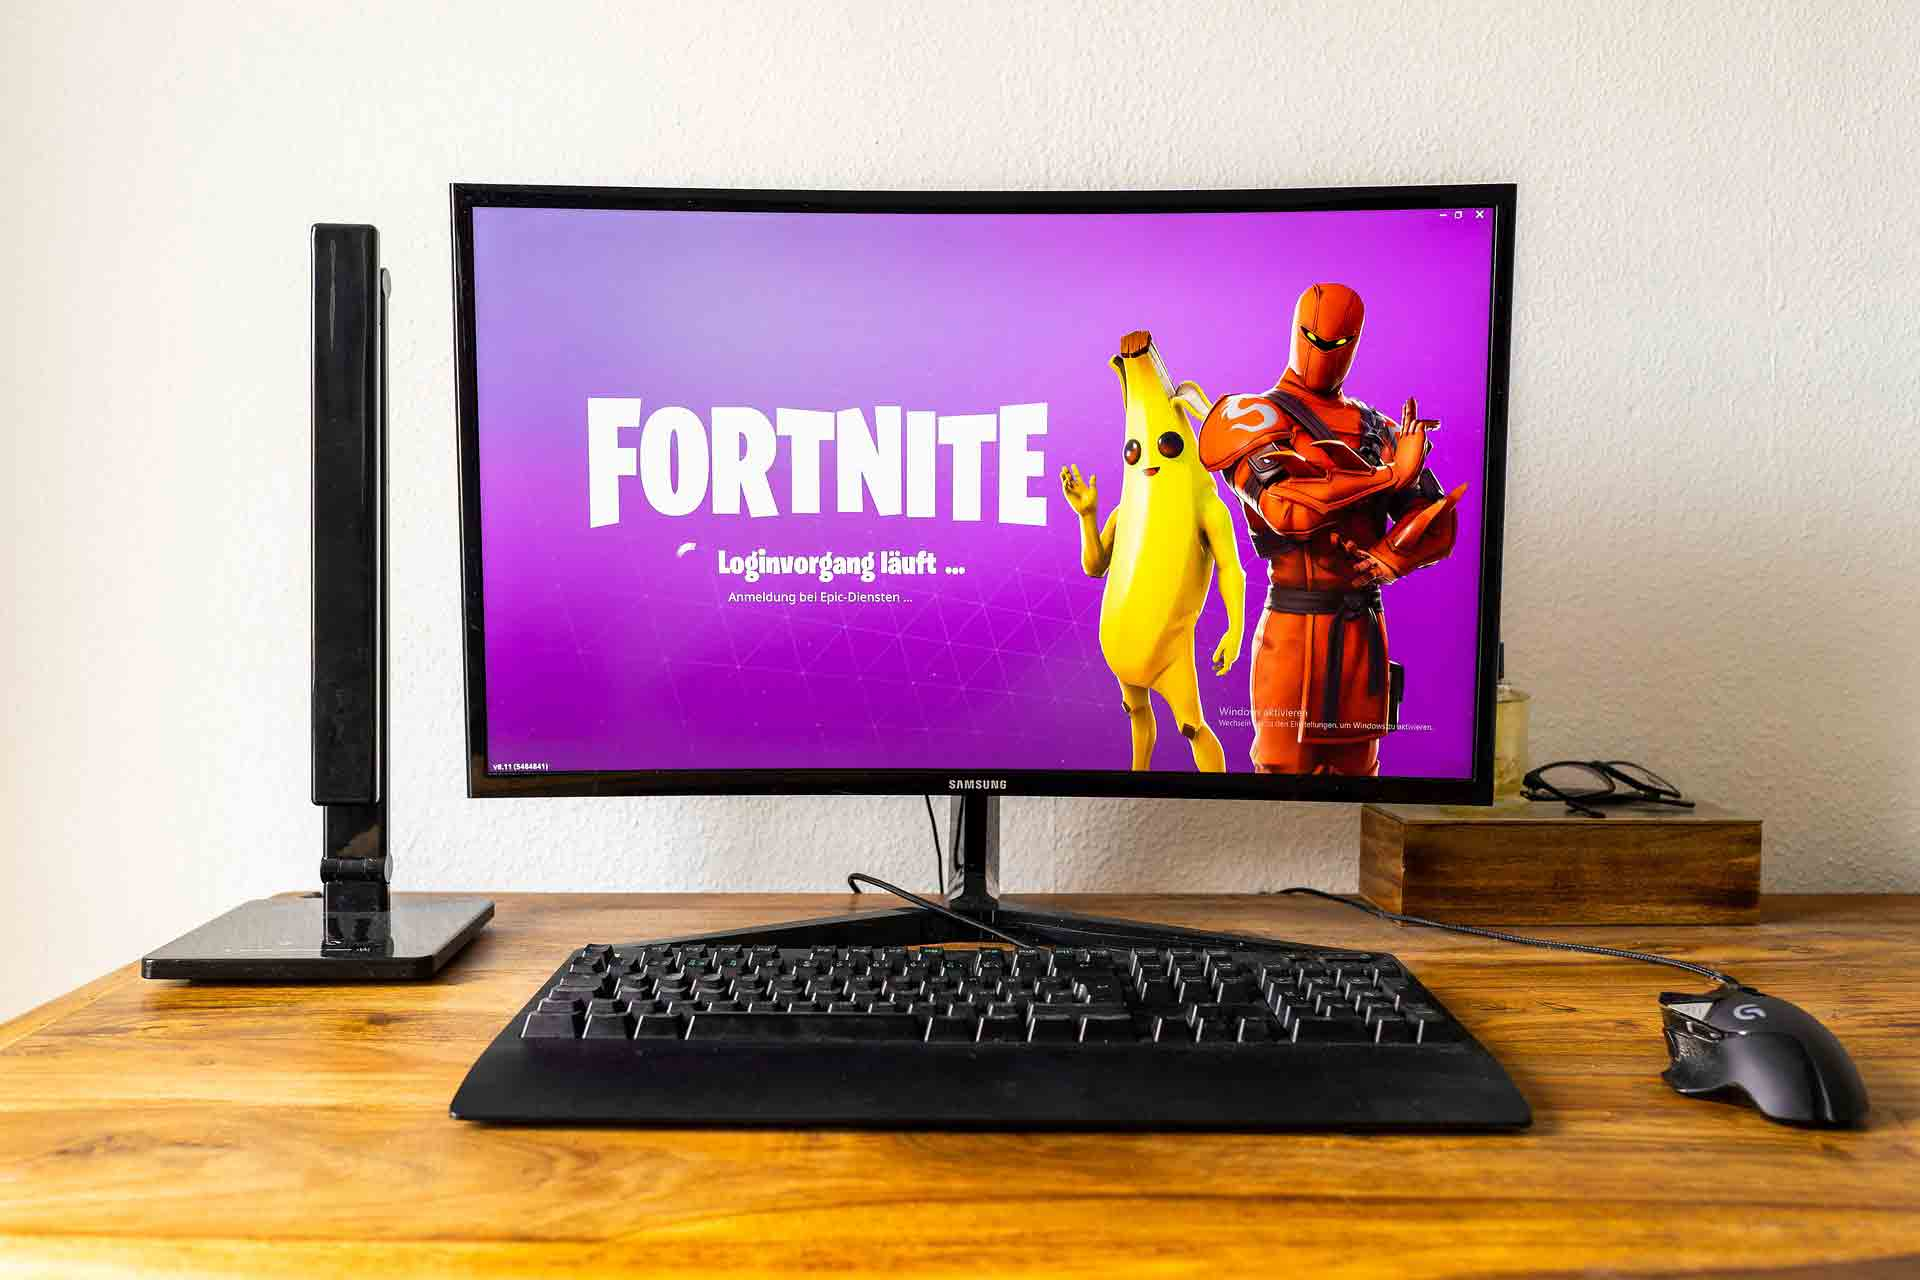 8 easy steps to optimize windows 10 for gaming and performance. Black Bedroom Furniture Sets. Home Design Ideas